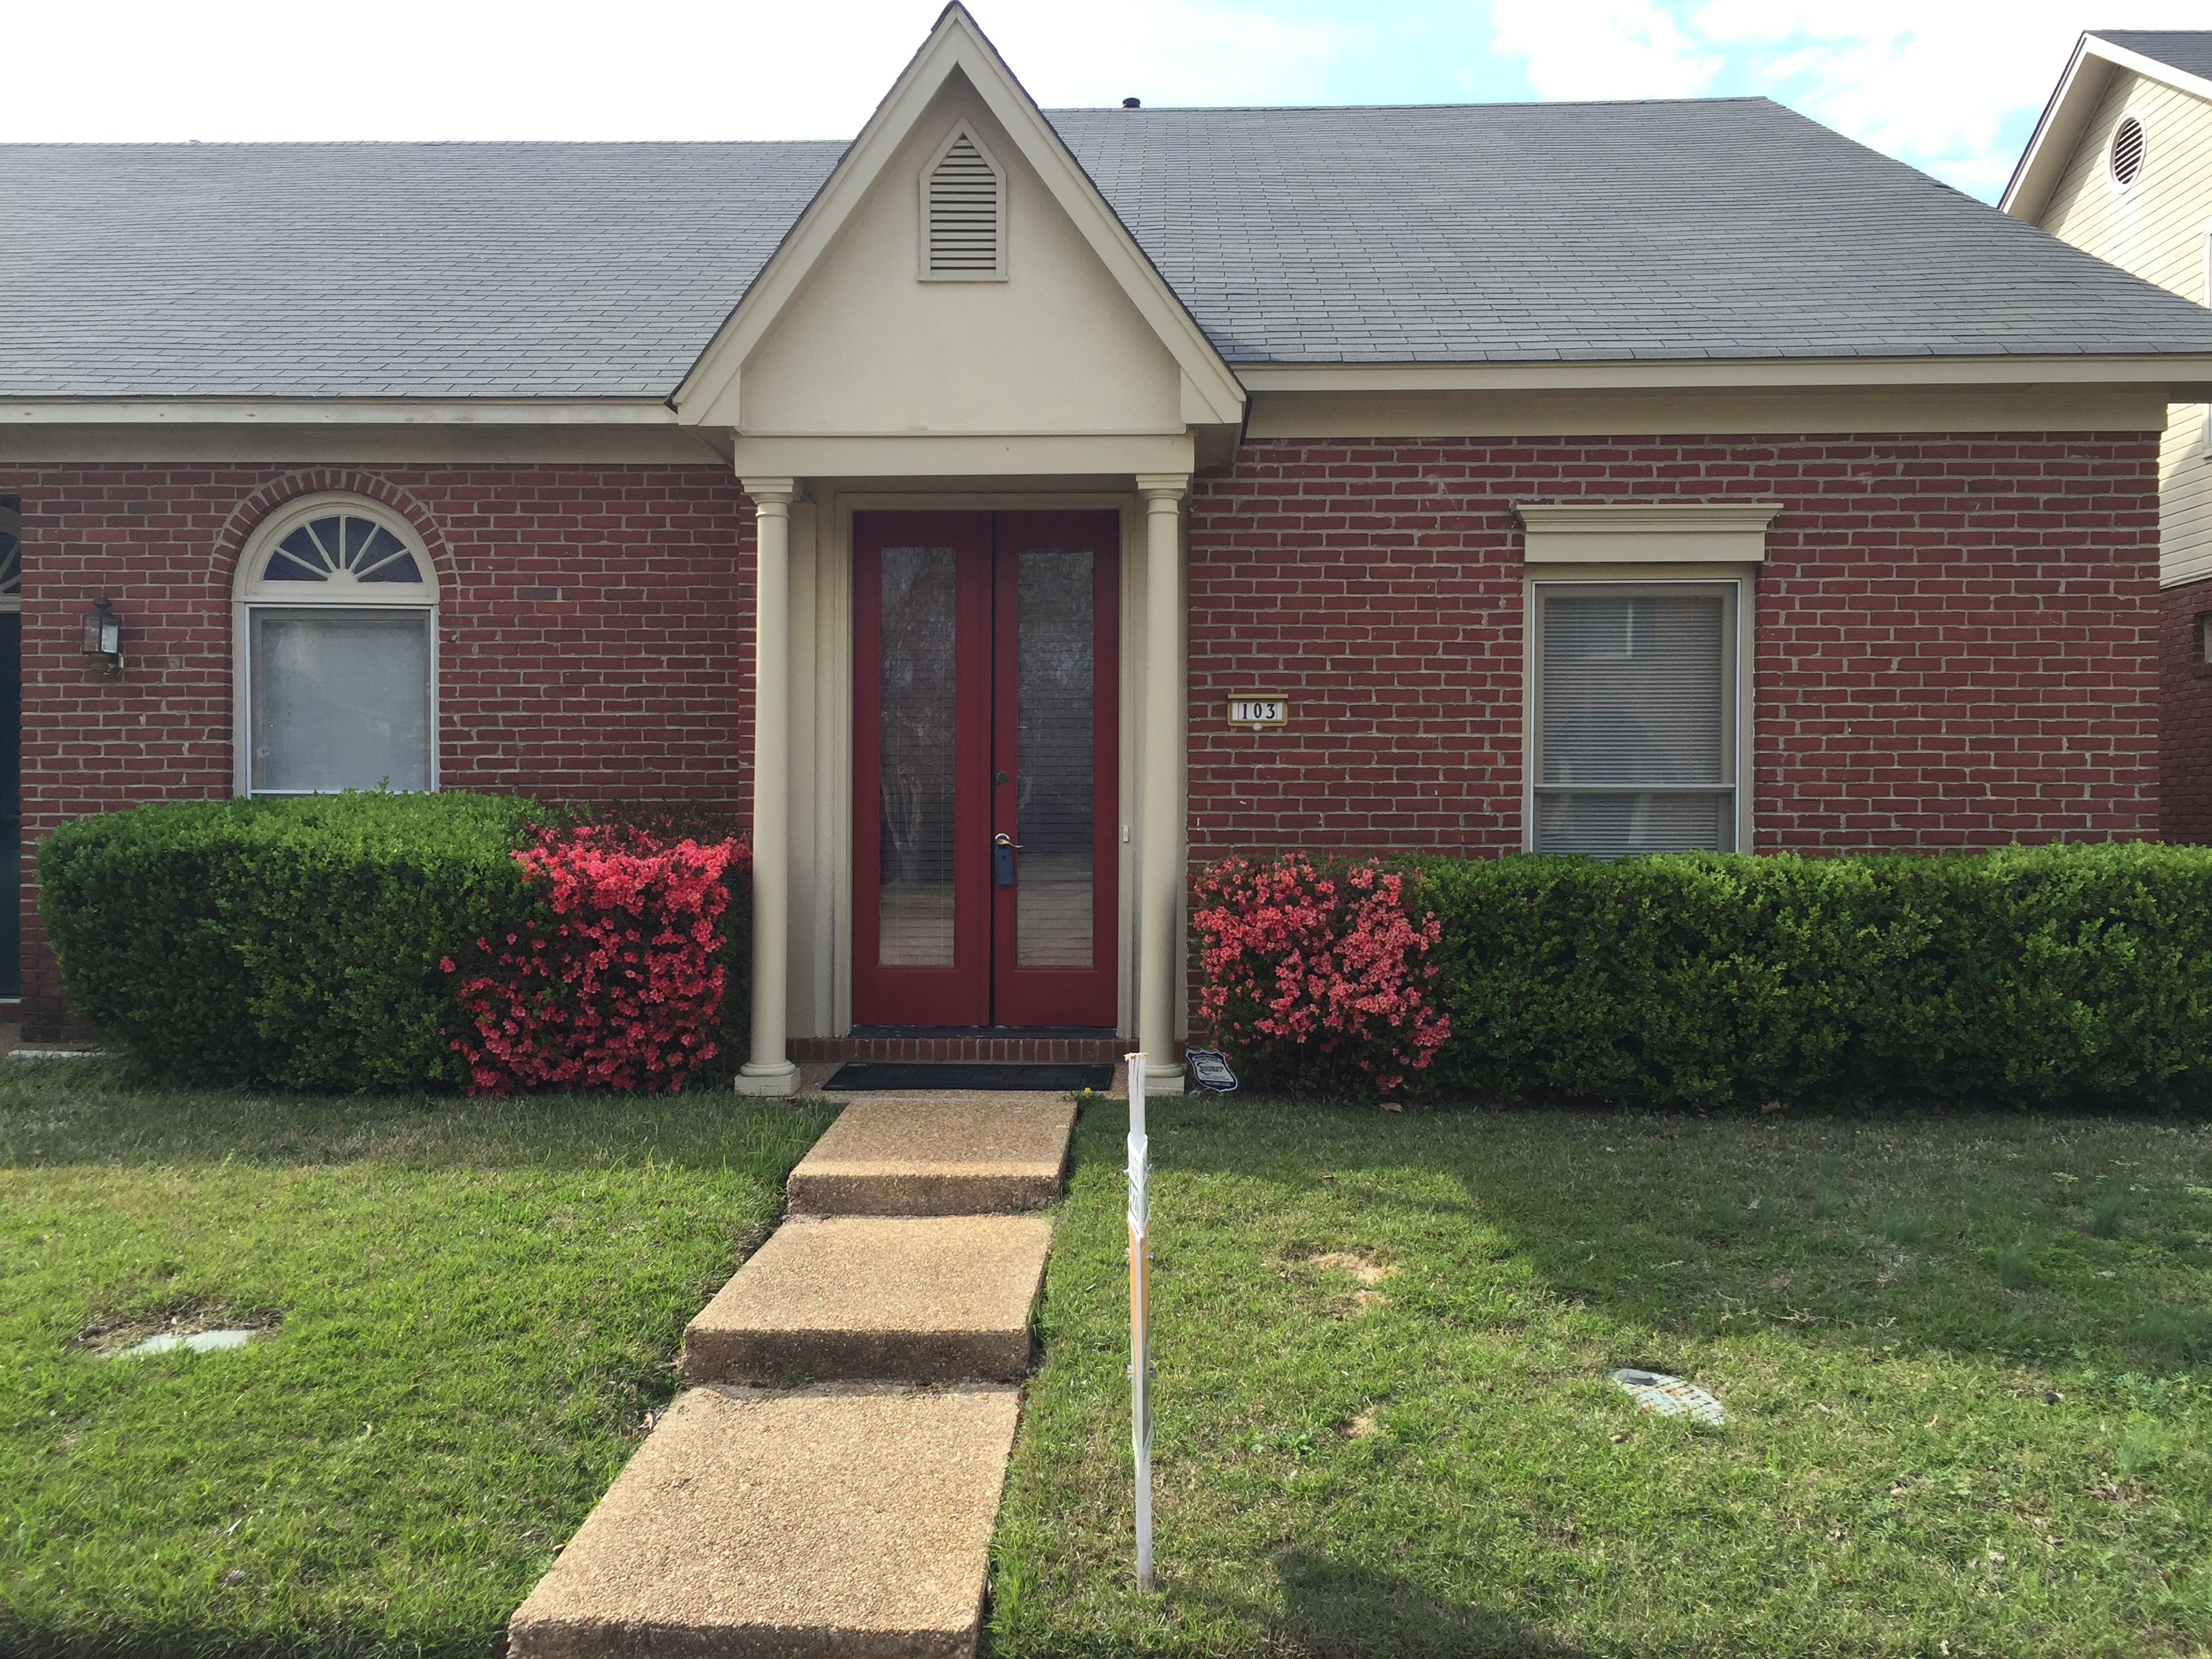 2 Bedroom 2 Bath Townhouse For Rent In Jackson Giordano